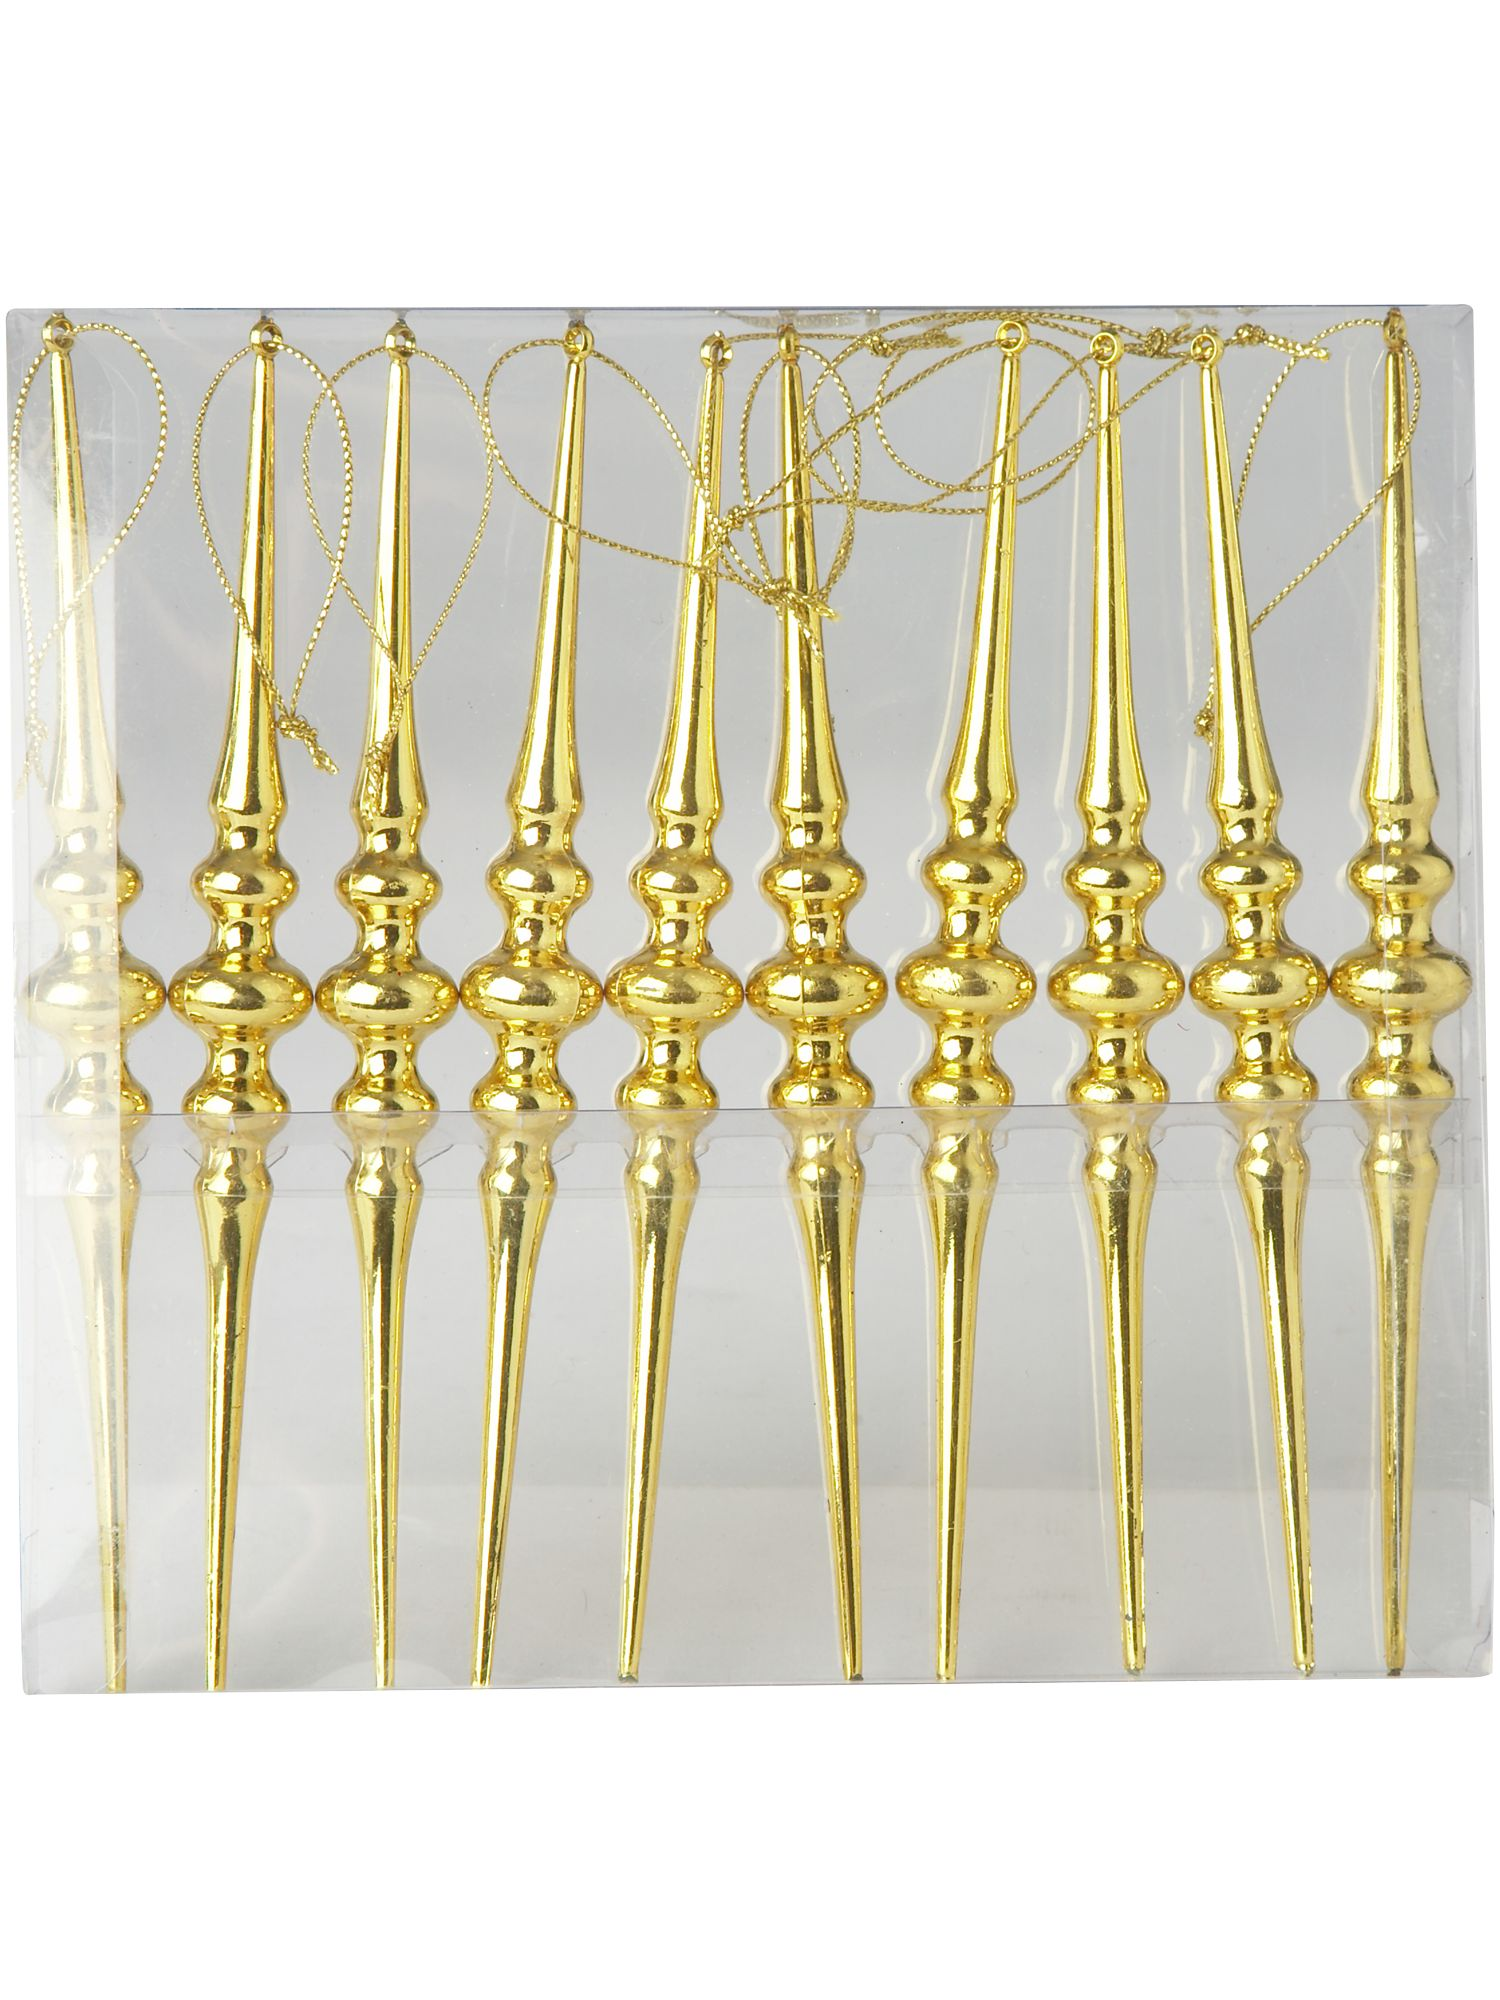 Renaissance set of ten gold finials